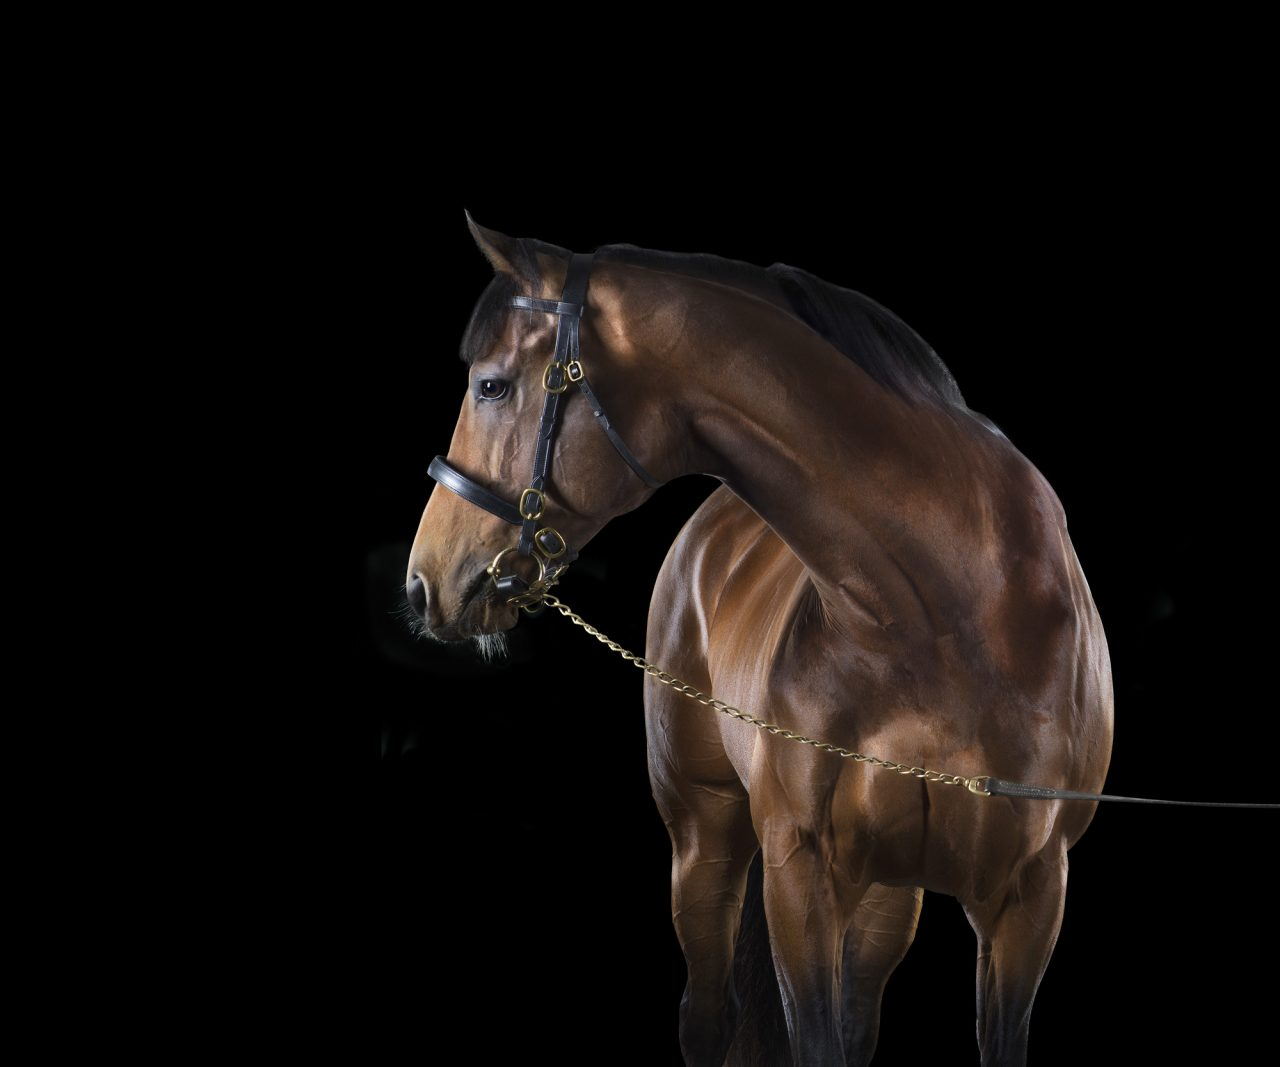 brown thoroughbred horse posed in front of a black background